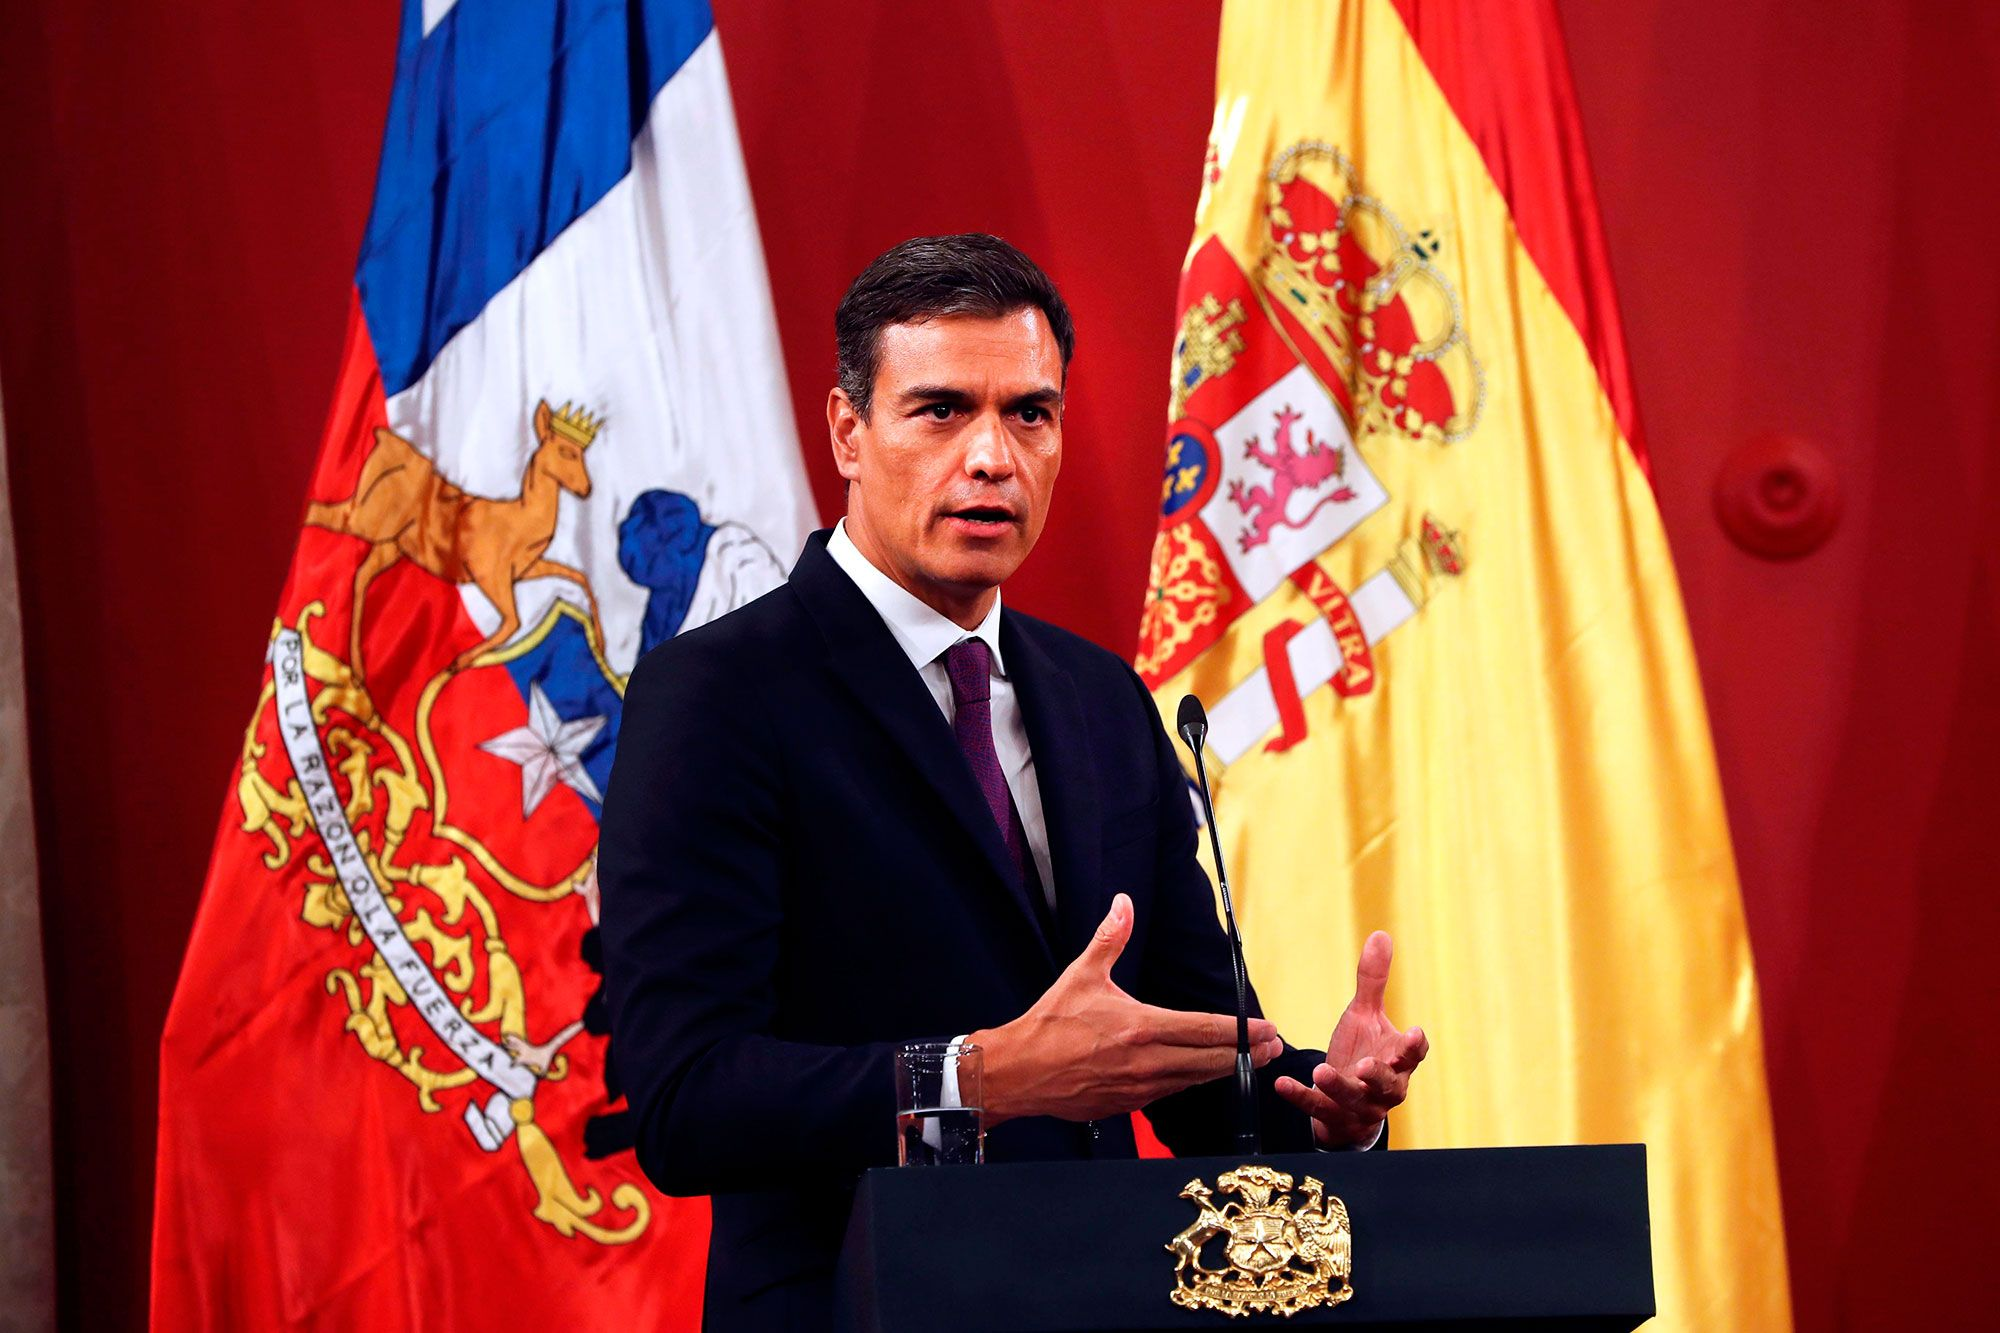 pedro sanchez chile